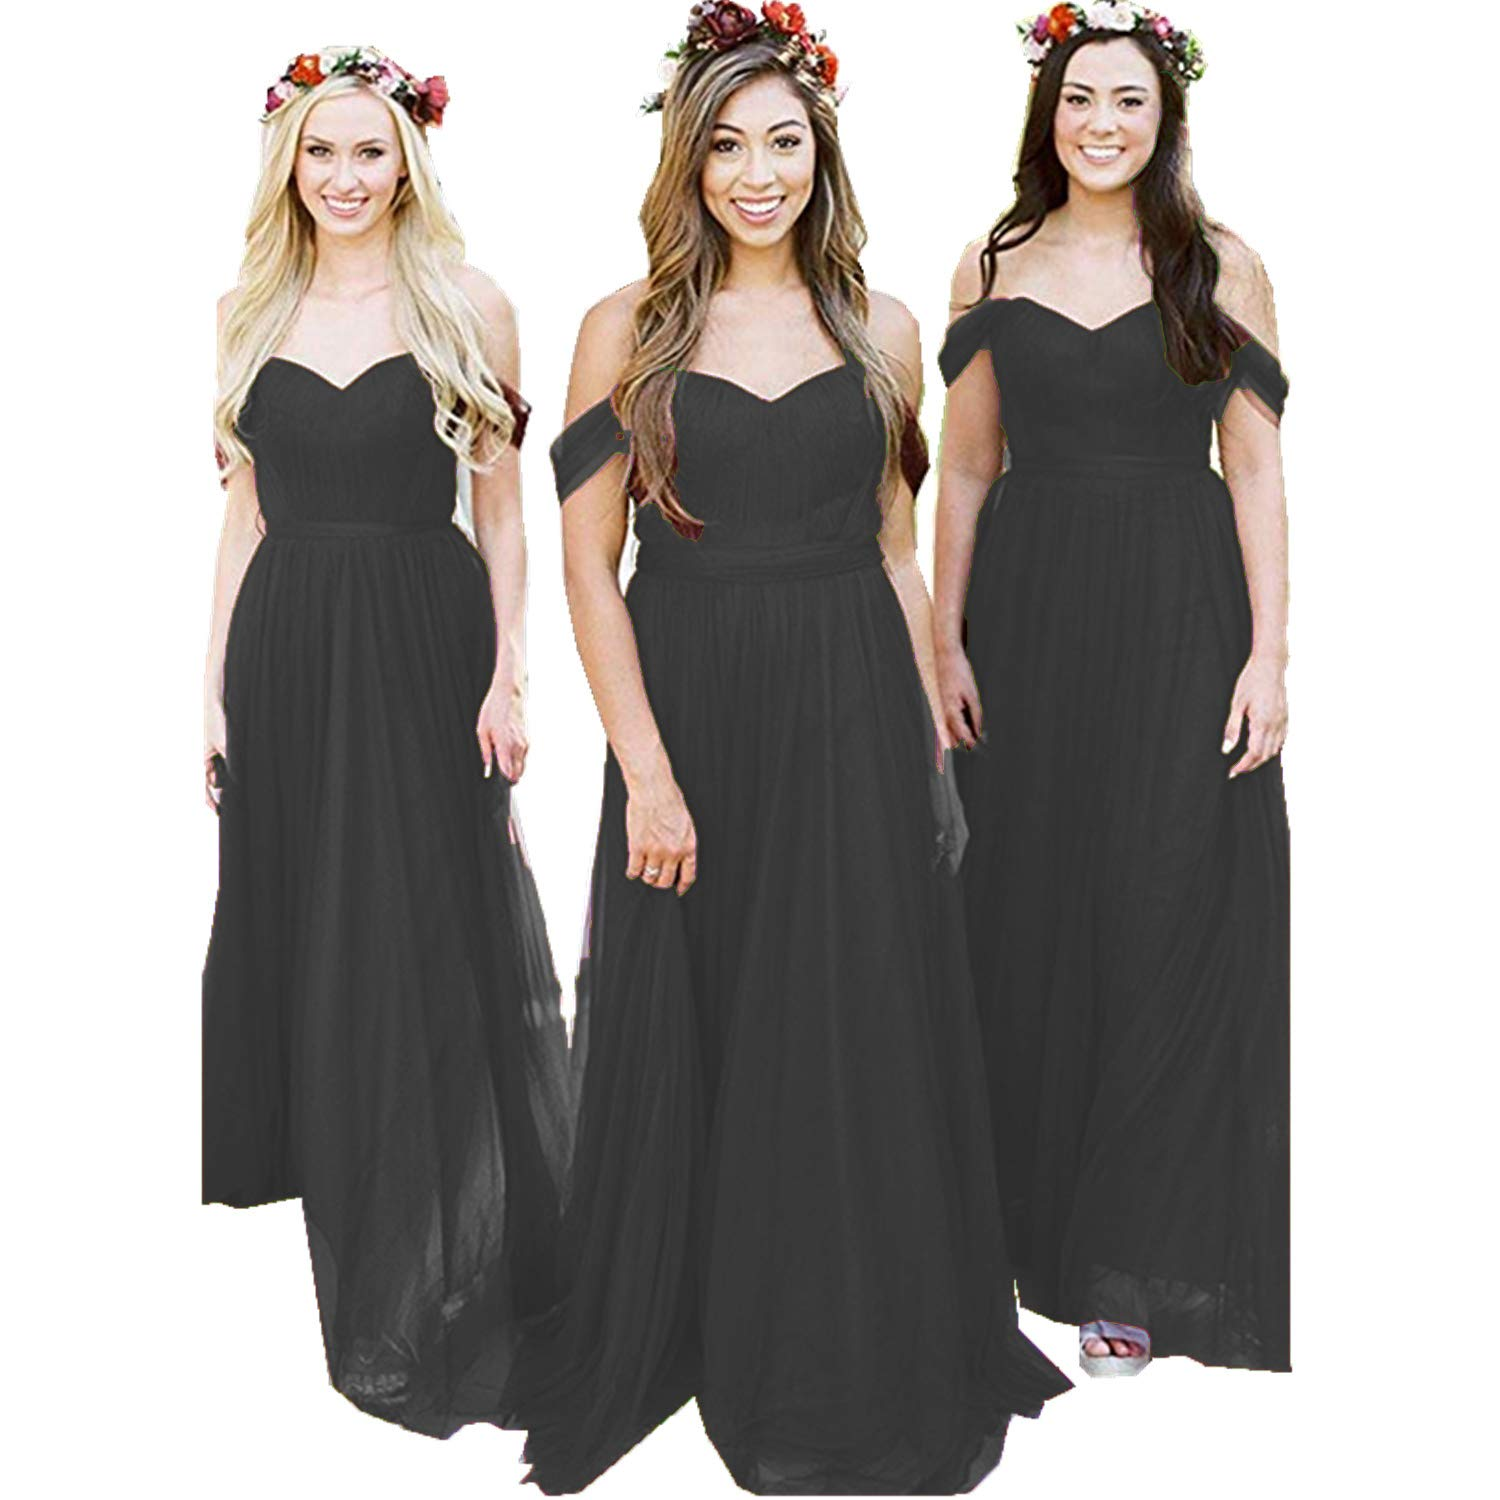 Black Ruiyuhong Women's Off The Shoulder Bridesmaid Dresses Long Tulle Wedding Party Gown